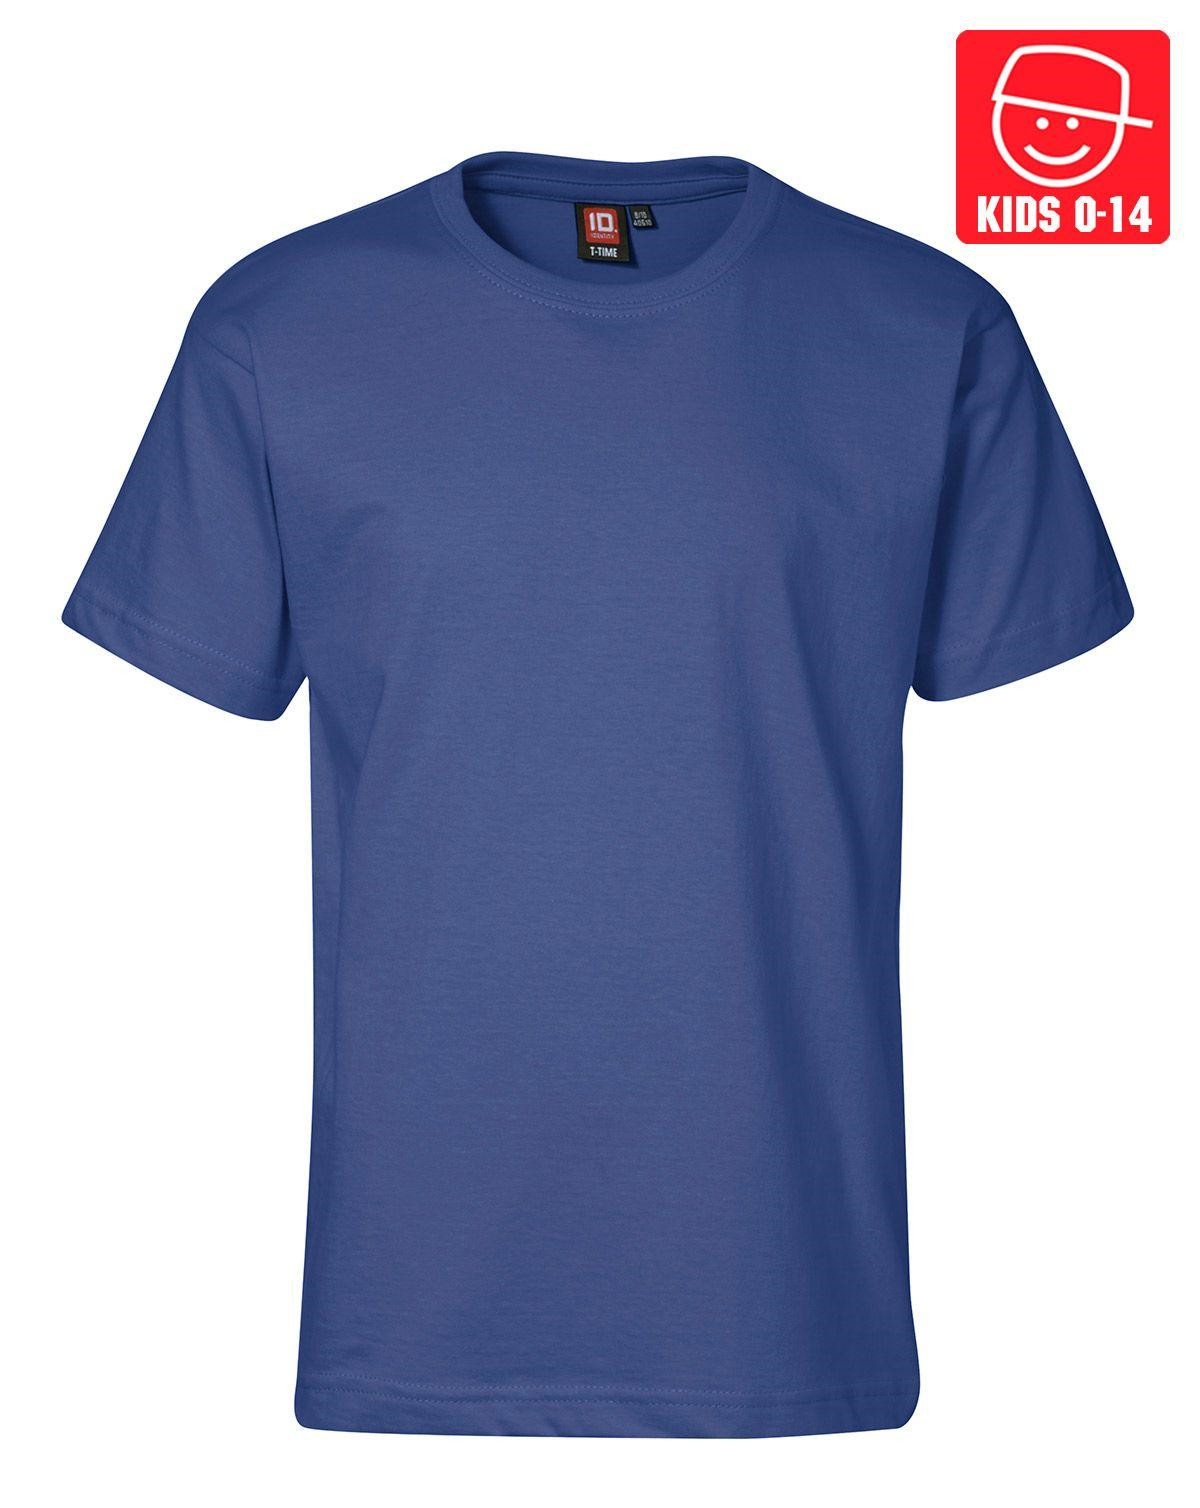 Image of   ID T-TIME T-shirt (Kongeblå, 122)